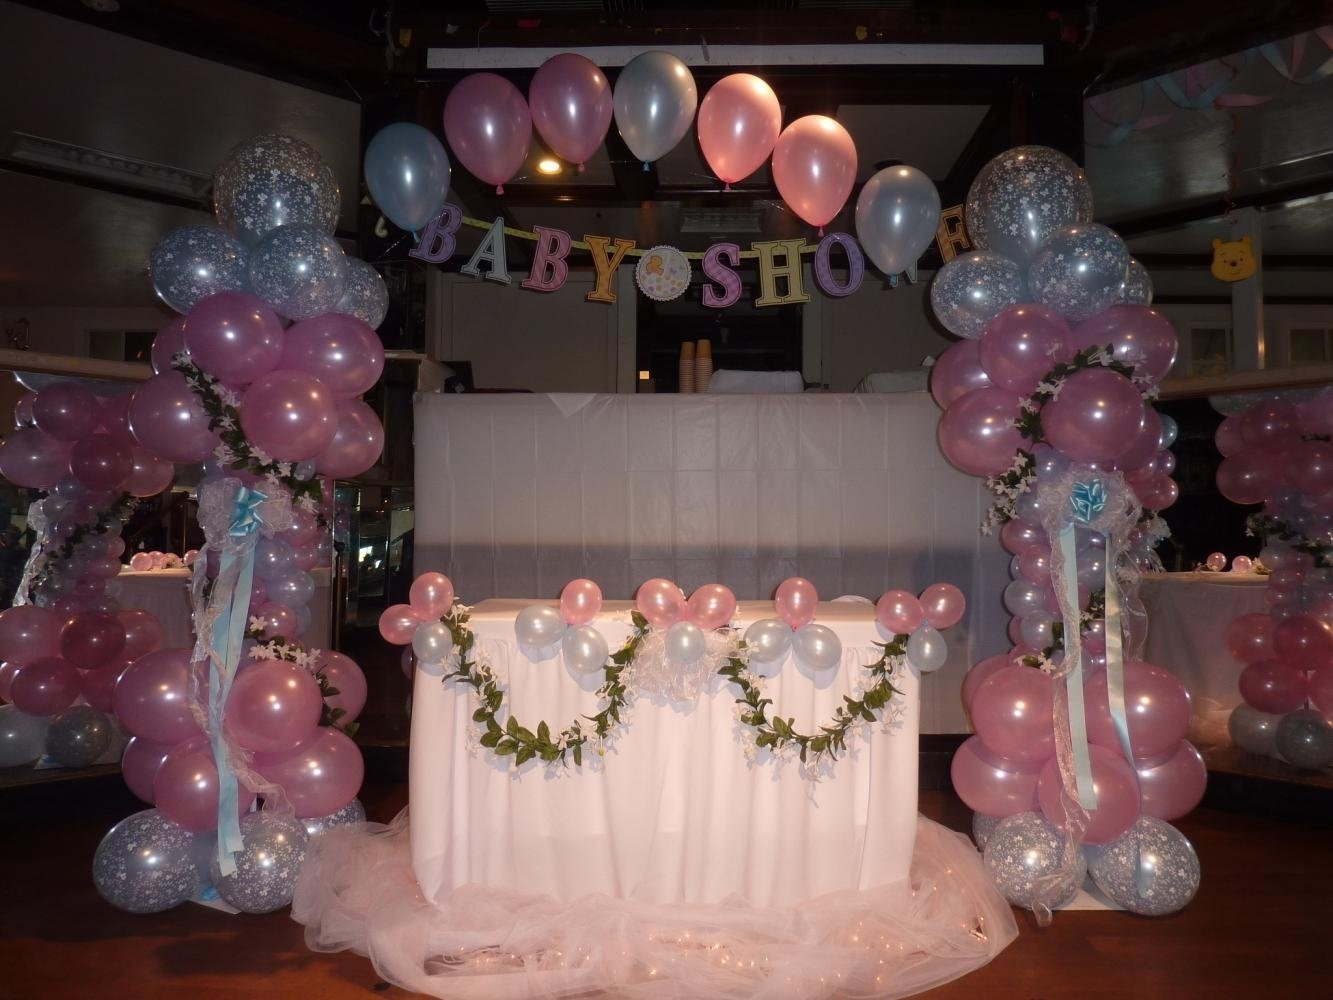 10 Awesome Baby Shower Balloon Decorations Ideas remarkable party balloons decorations for enthralling baby shower 2020